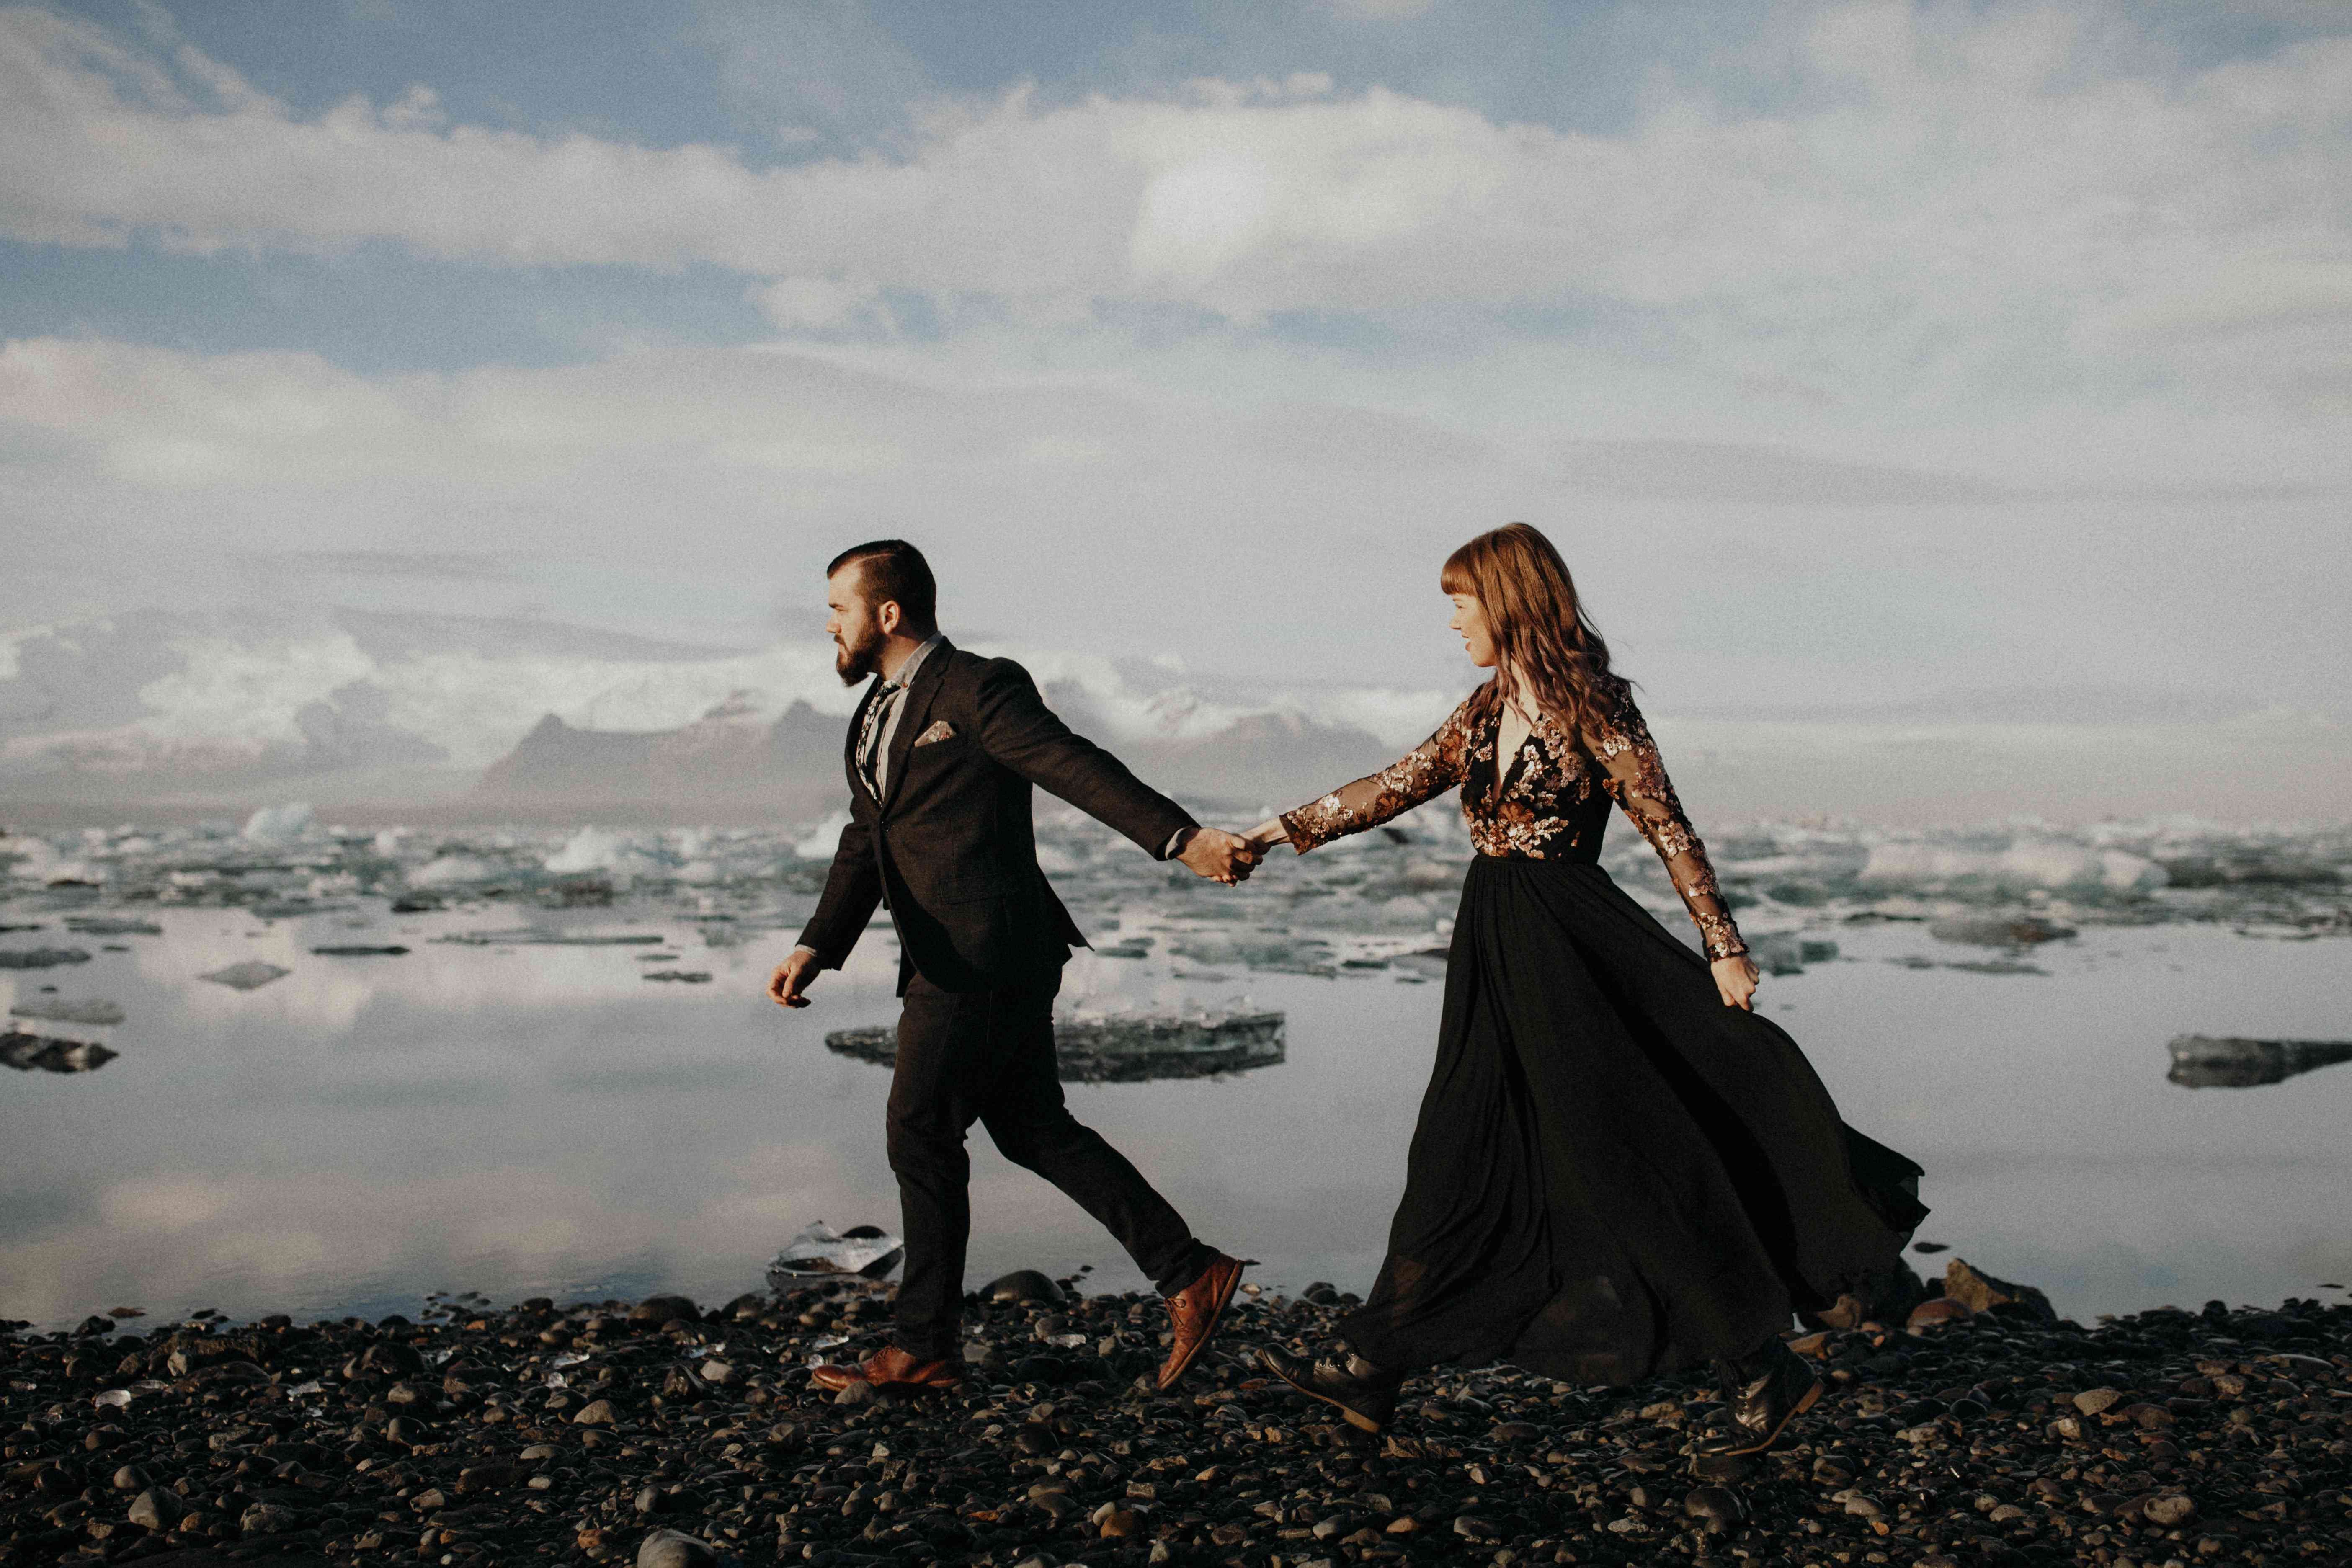 Couple walking next to an iceberg field in Iceland